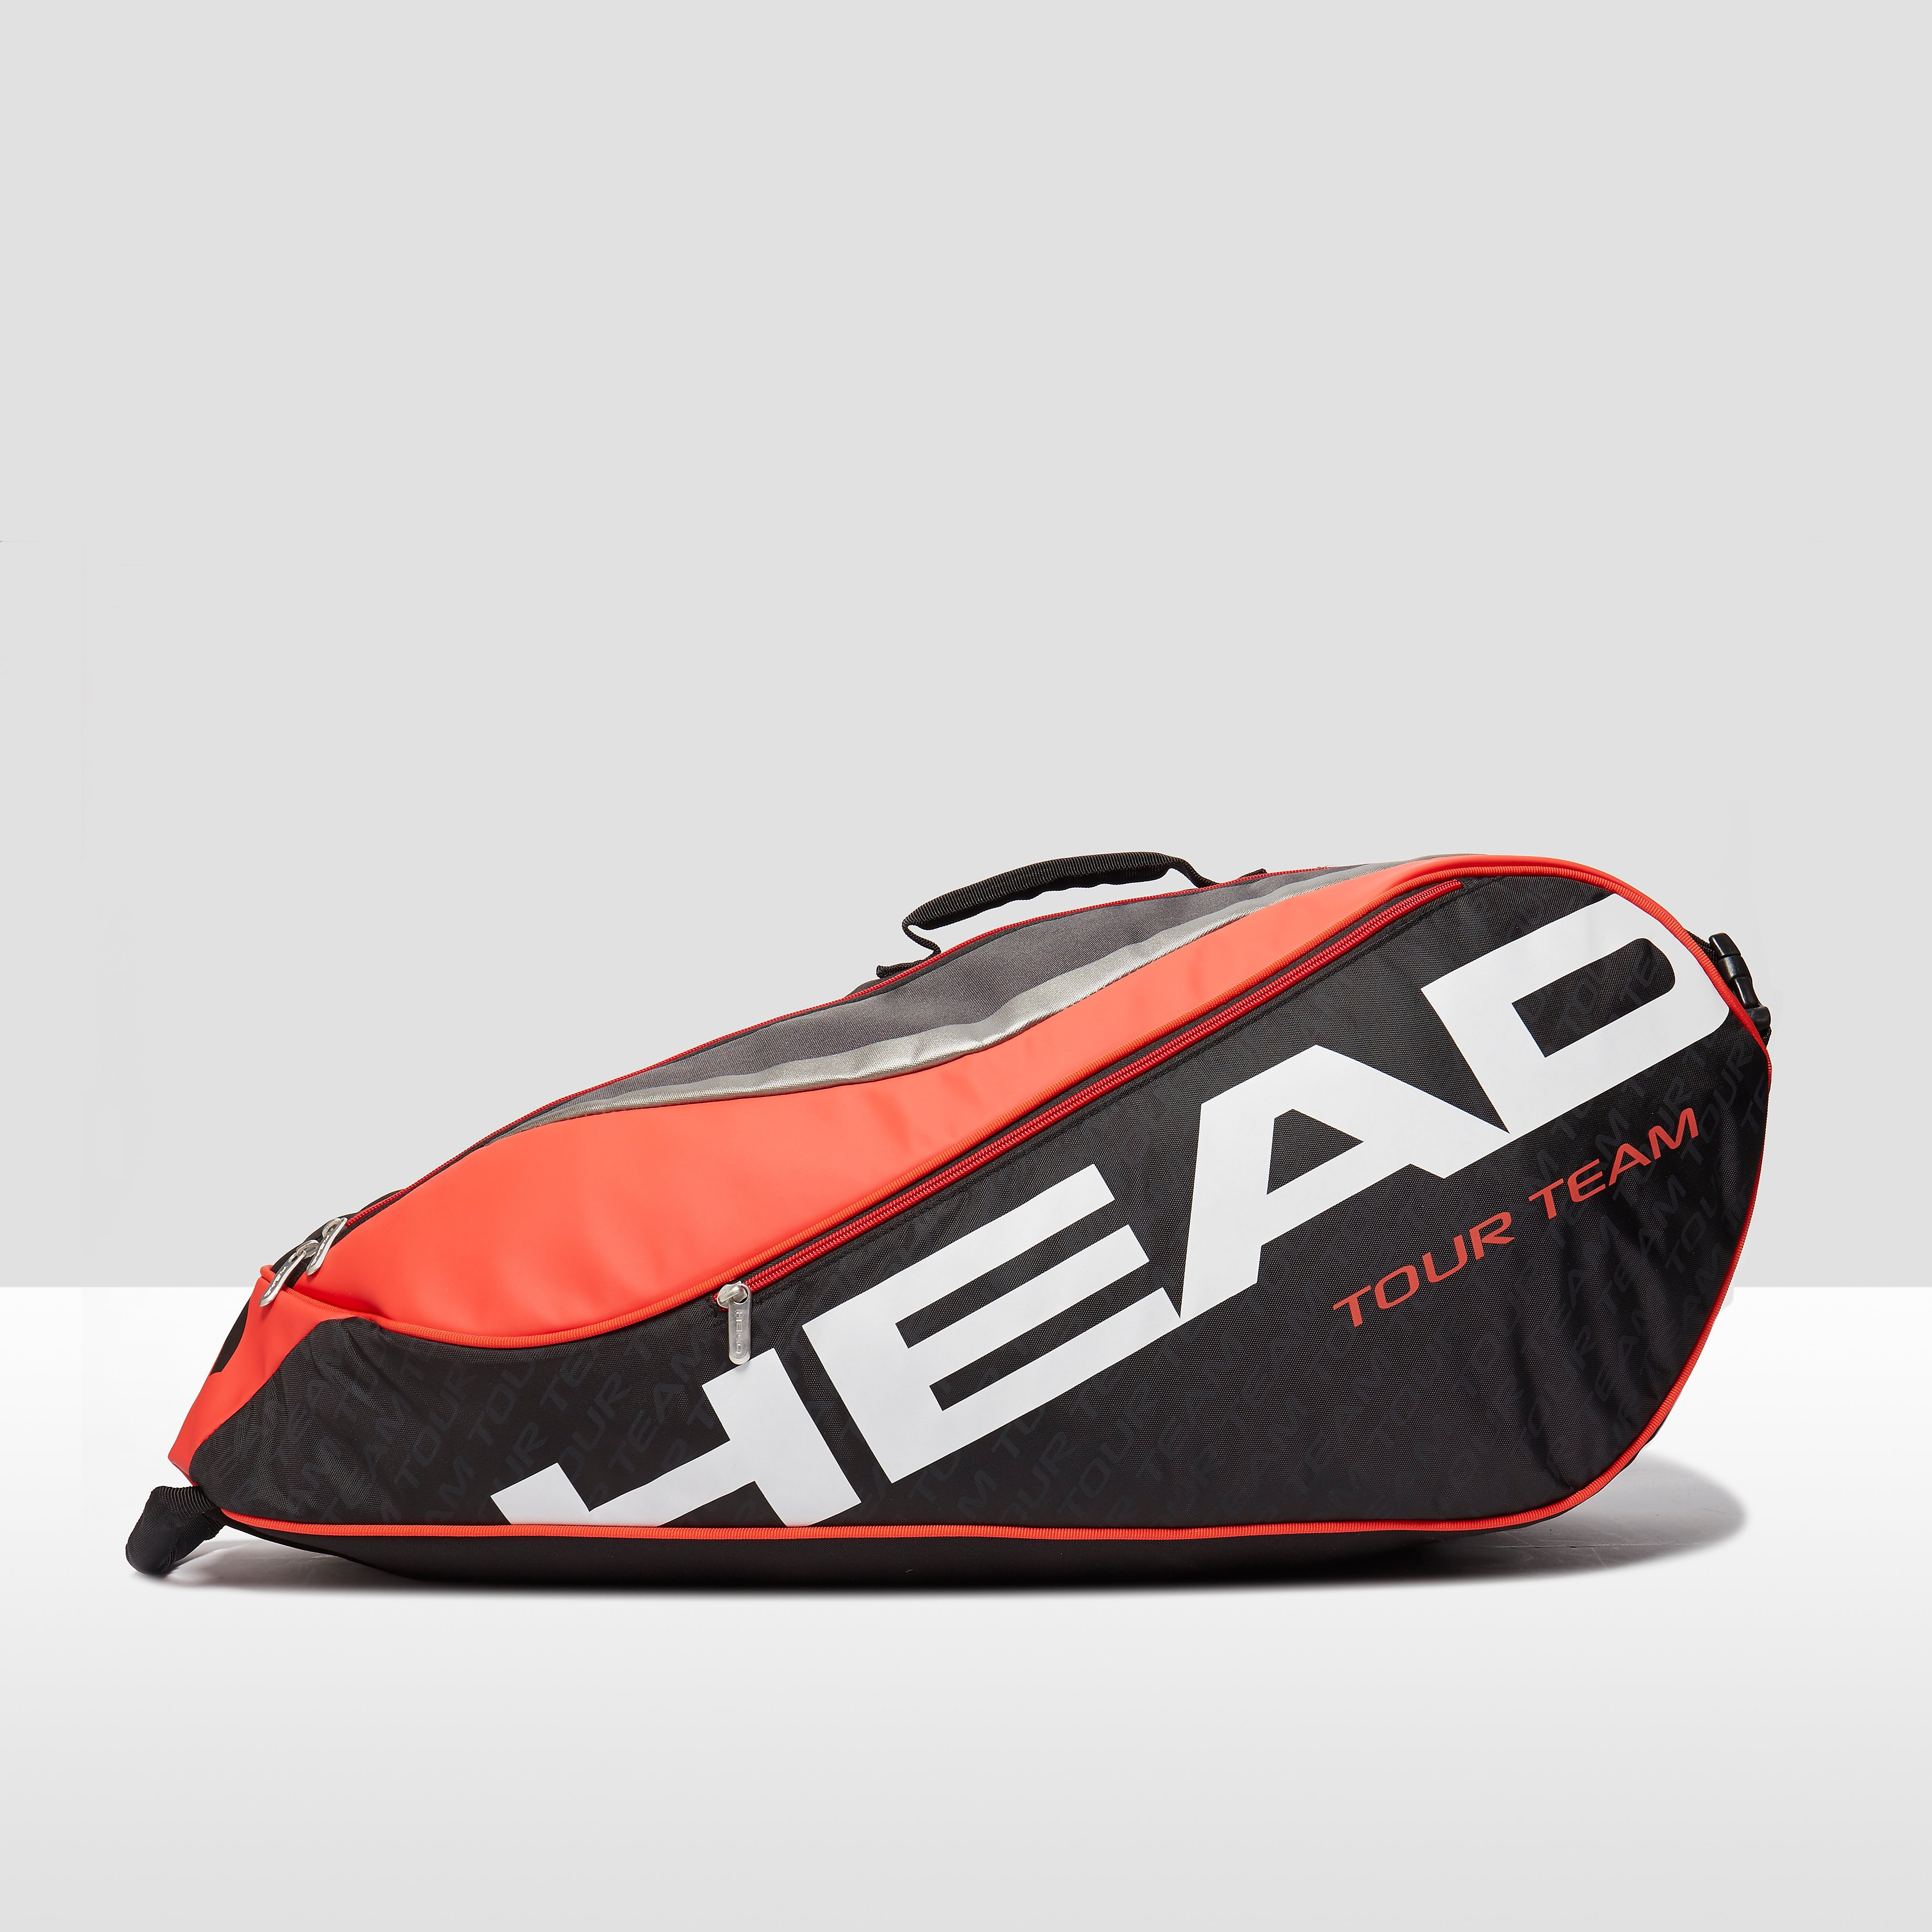 Head Tour Team 6 Racket Tennis Bag